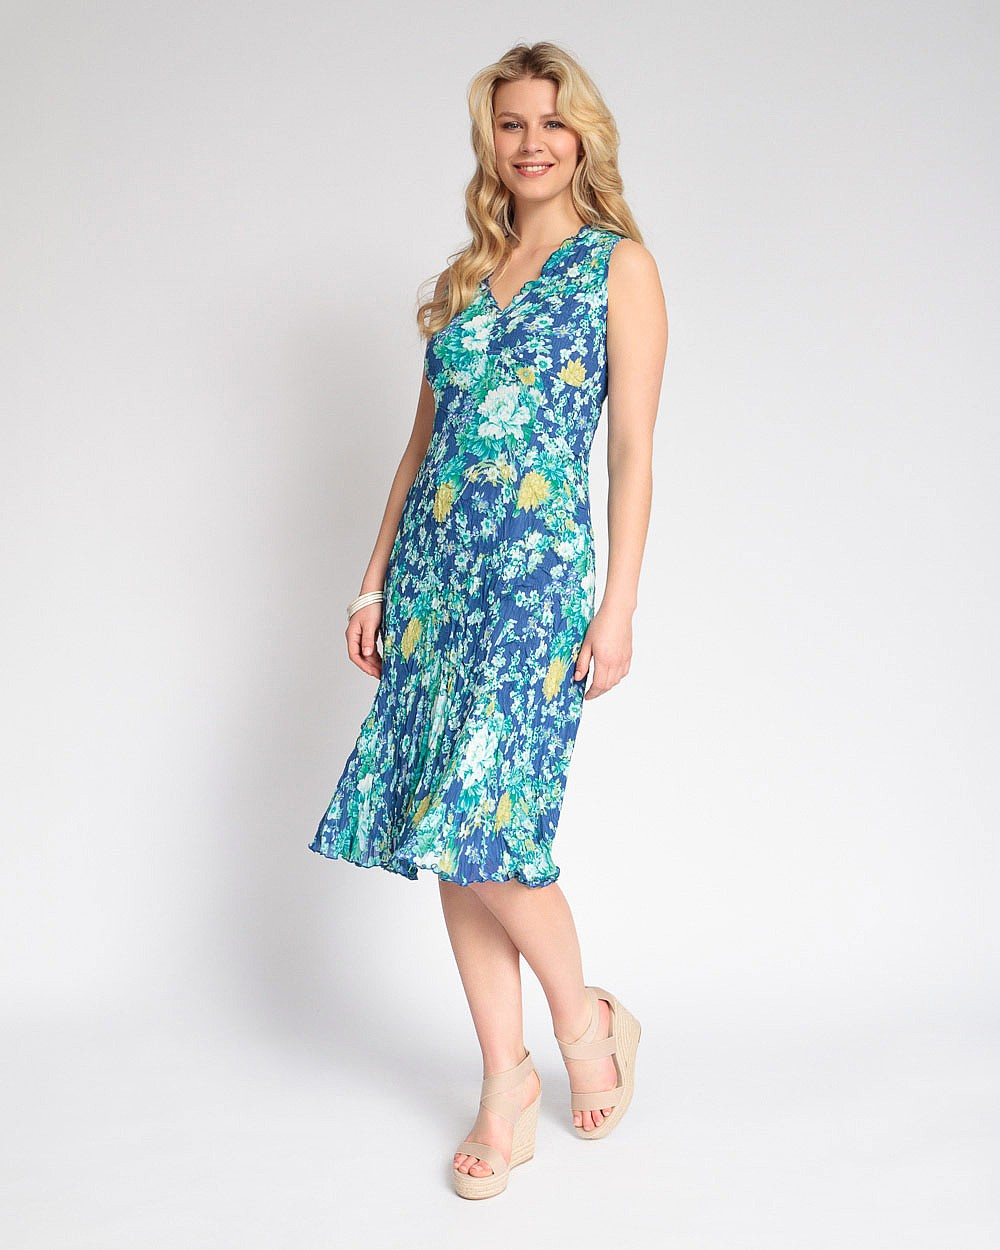 East Casual Florencia Floral Bubble Dress V-Neck Sleeveless Crinkle Fabric Blue